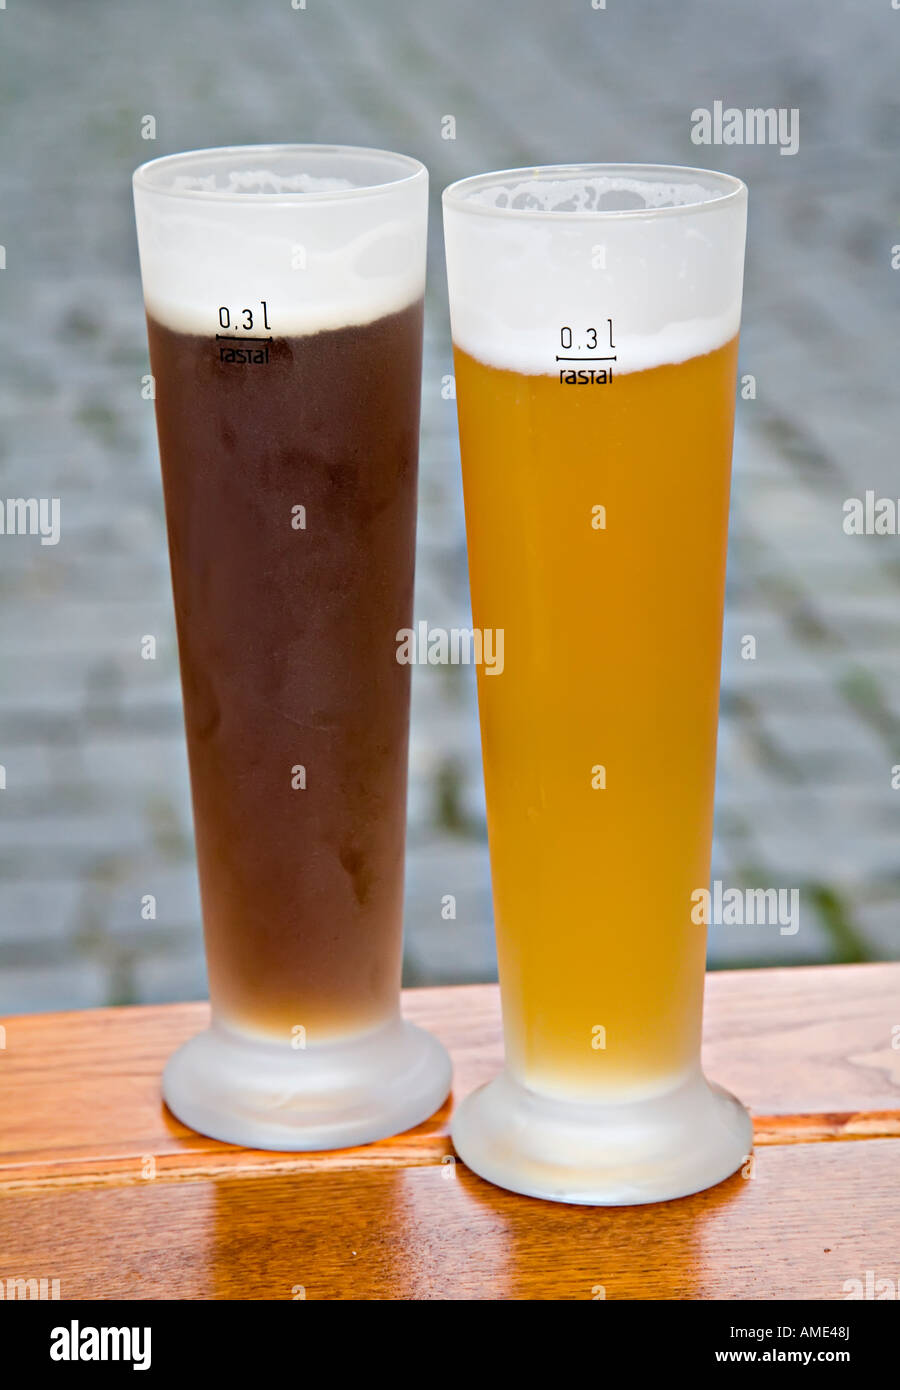 Dark and light German lager beer in tall glasses with volume rastal marks Germany - Stock Image